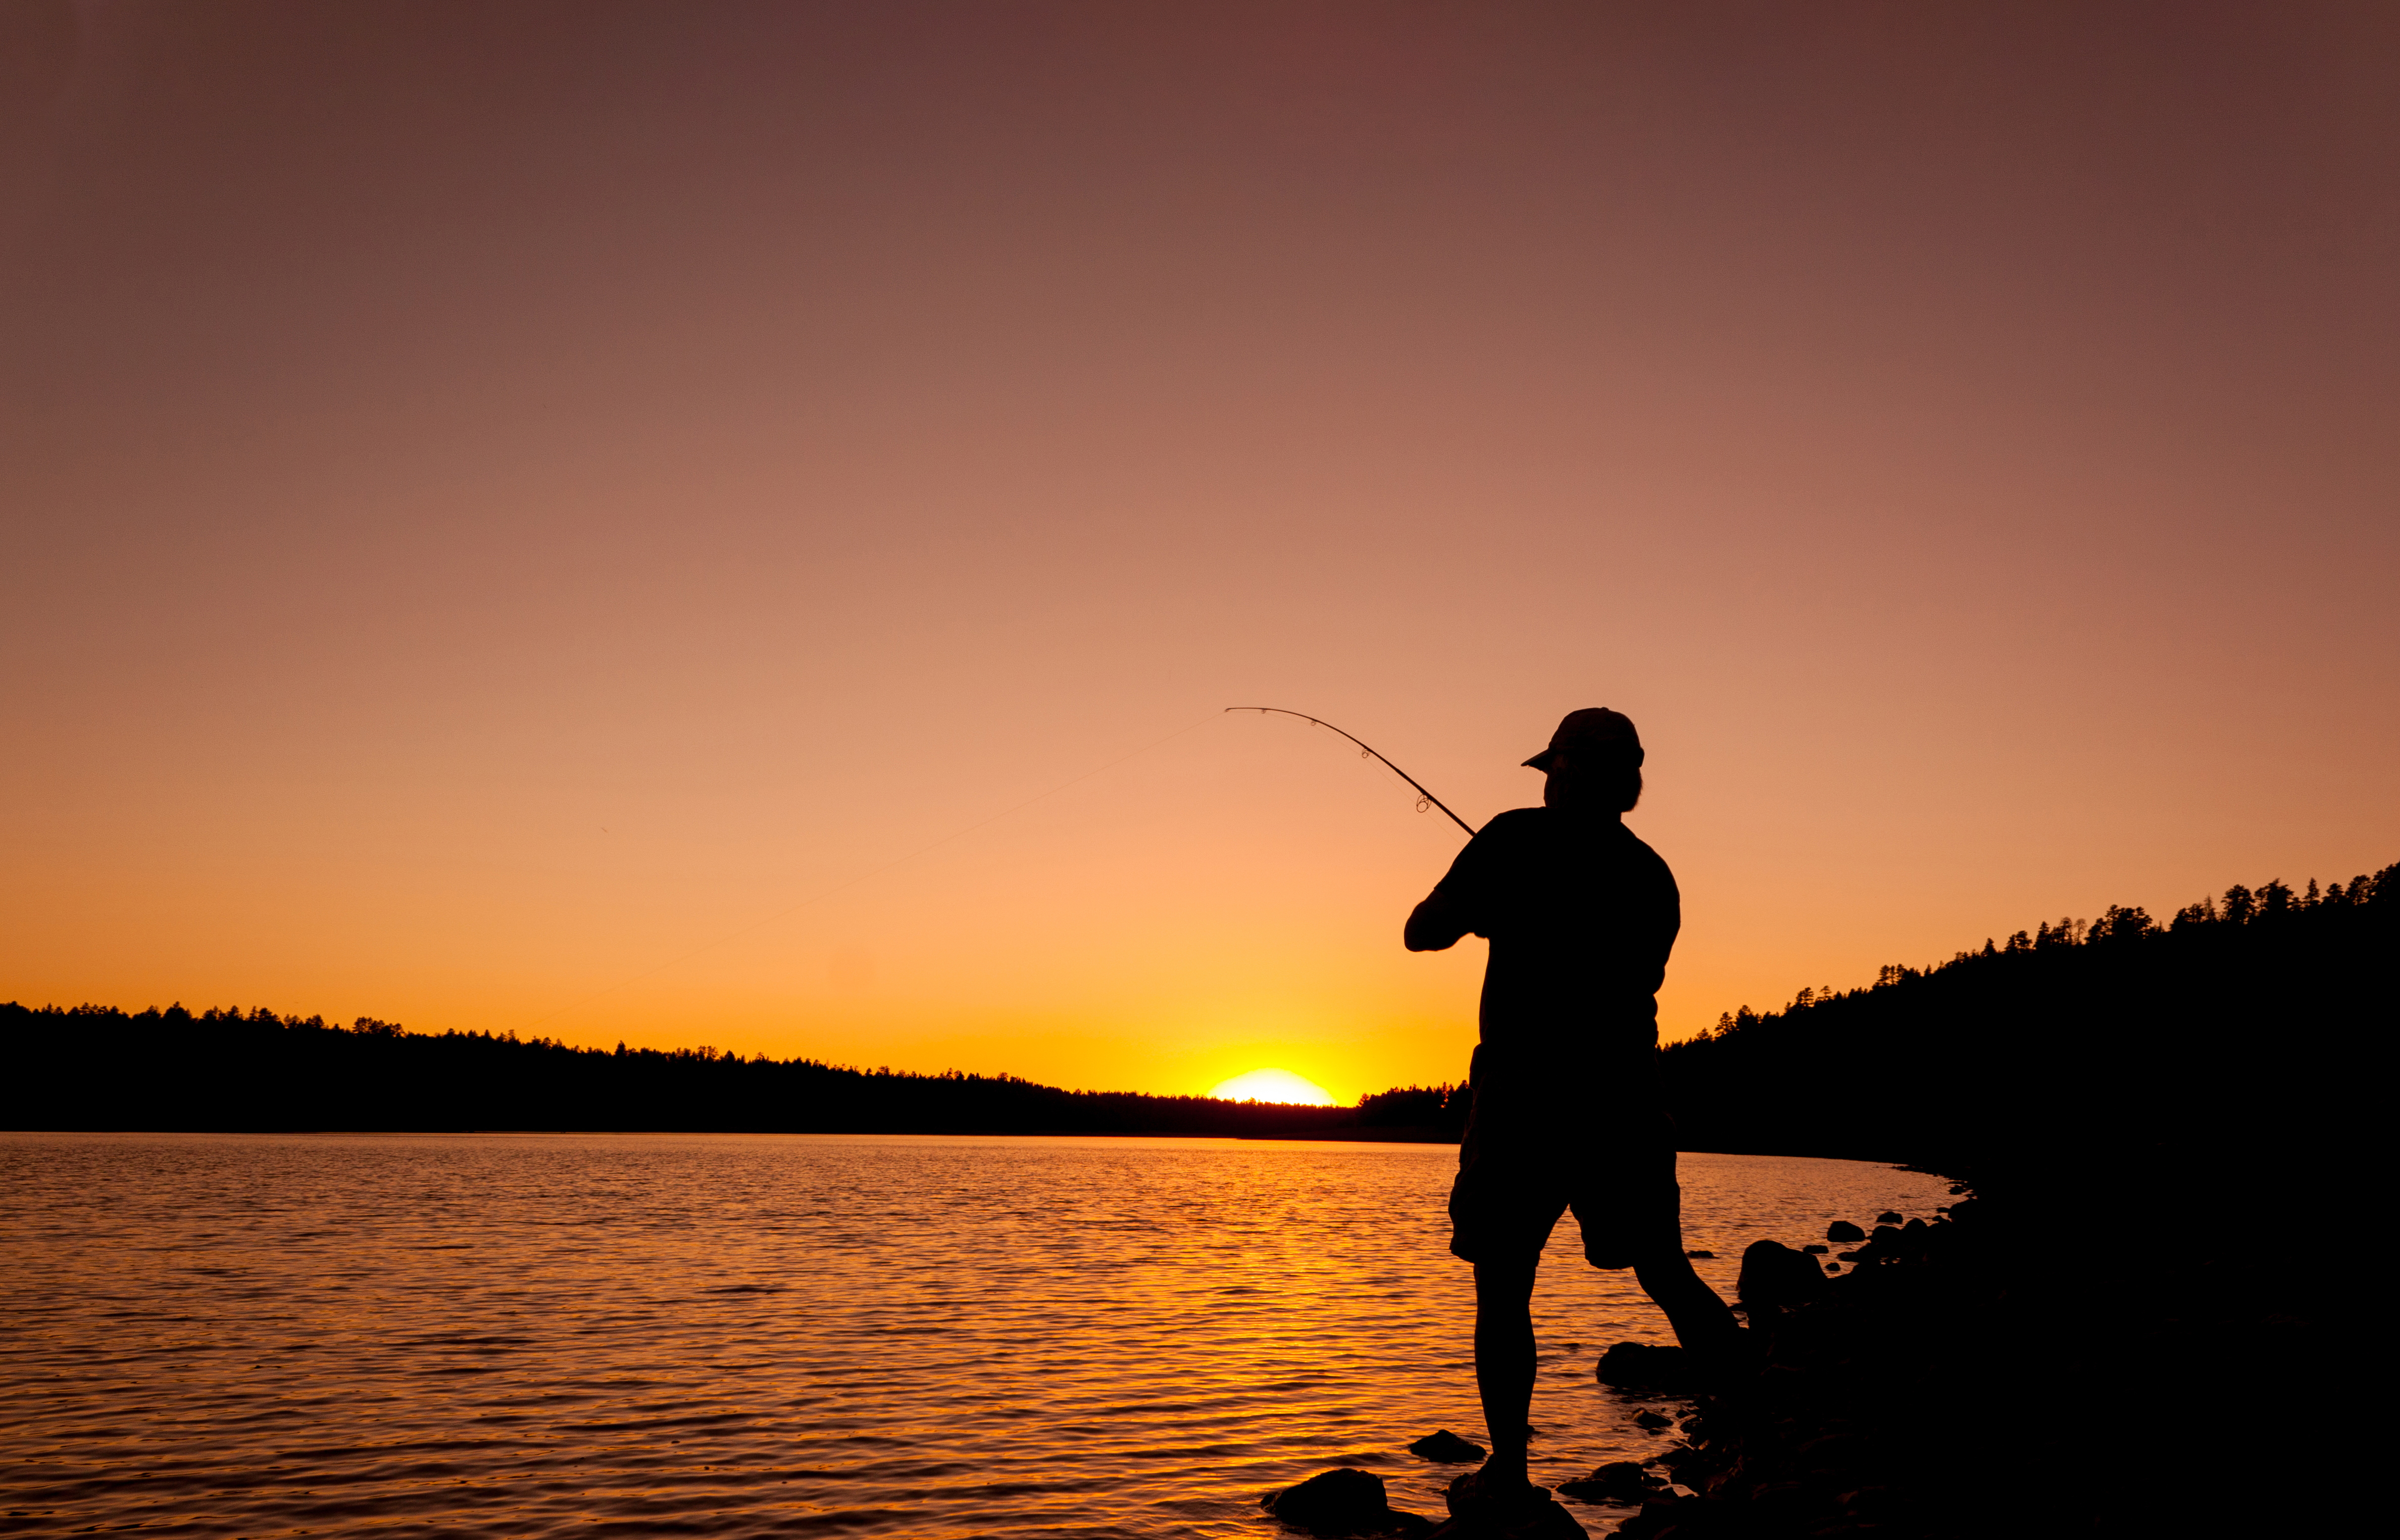 Man casts a line as the sun rises on the horizon.